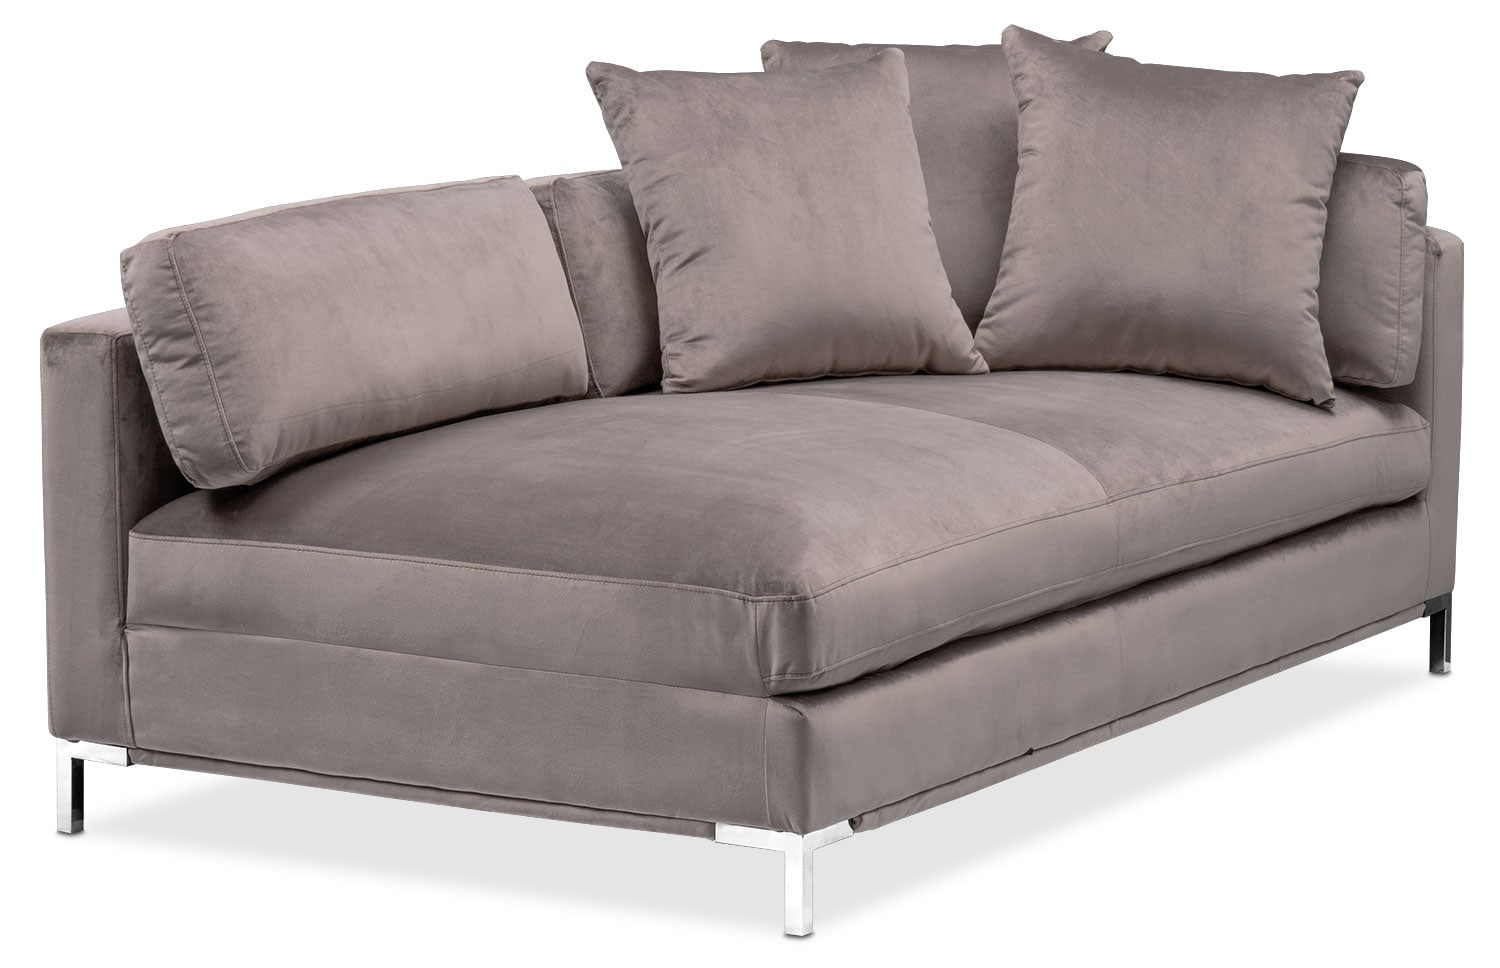 Moda Right-Facing Chaise - Oyster